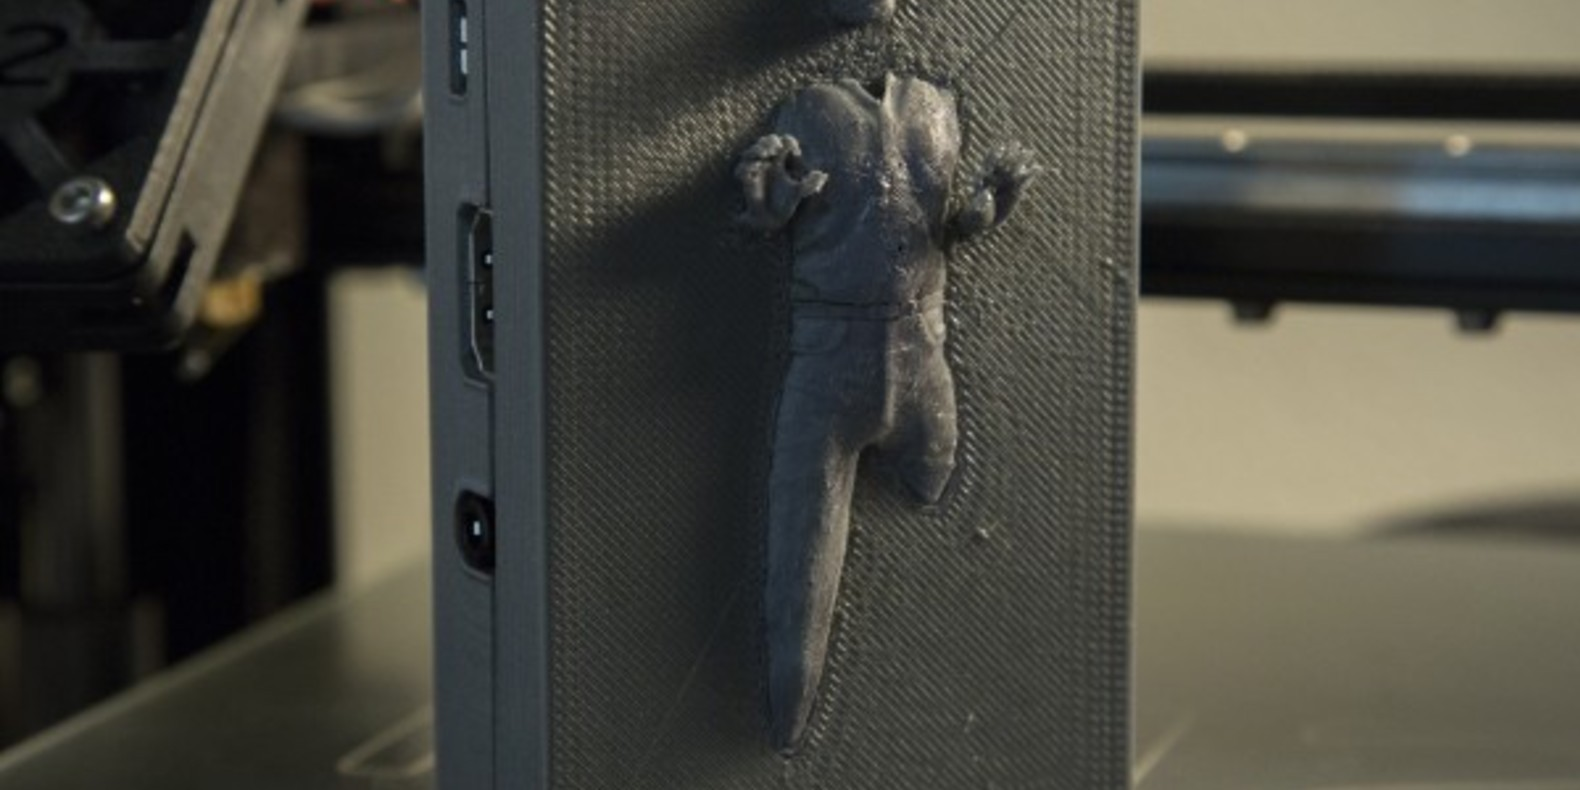 Han solo carbonite star wars raspberrypi 2 case 3D printer imprimé en 3D STL fichier Cults 1